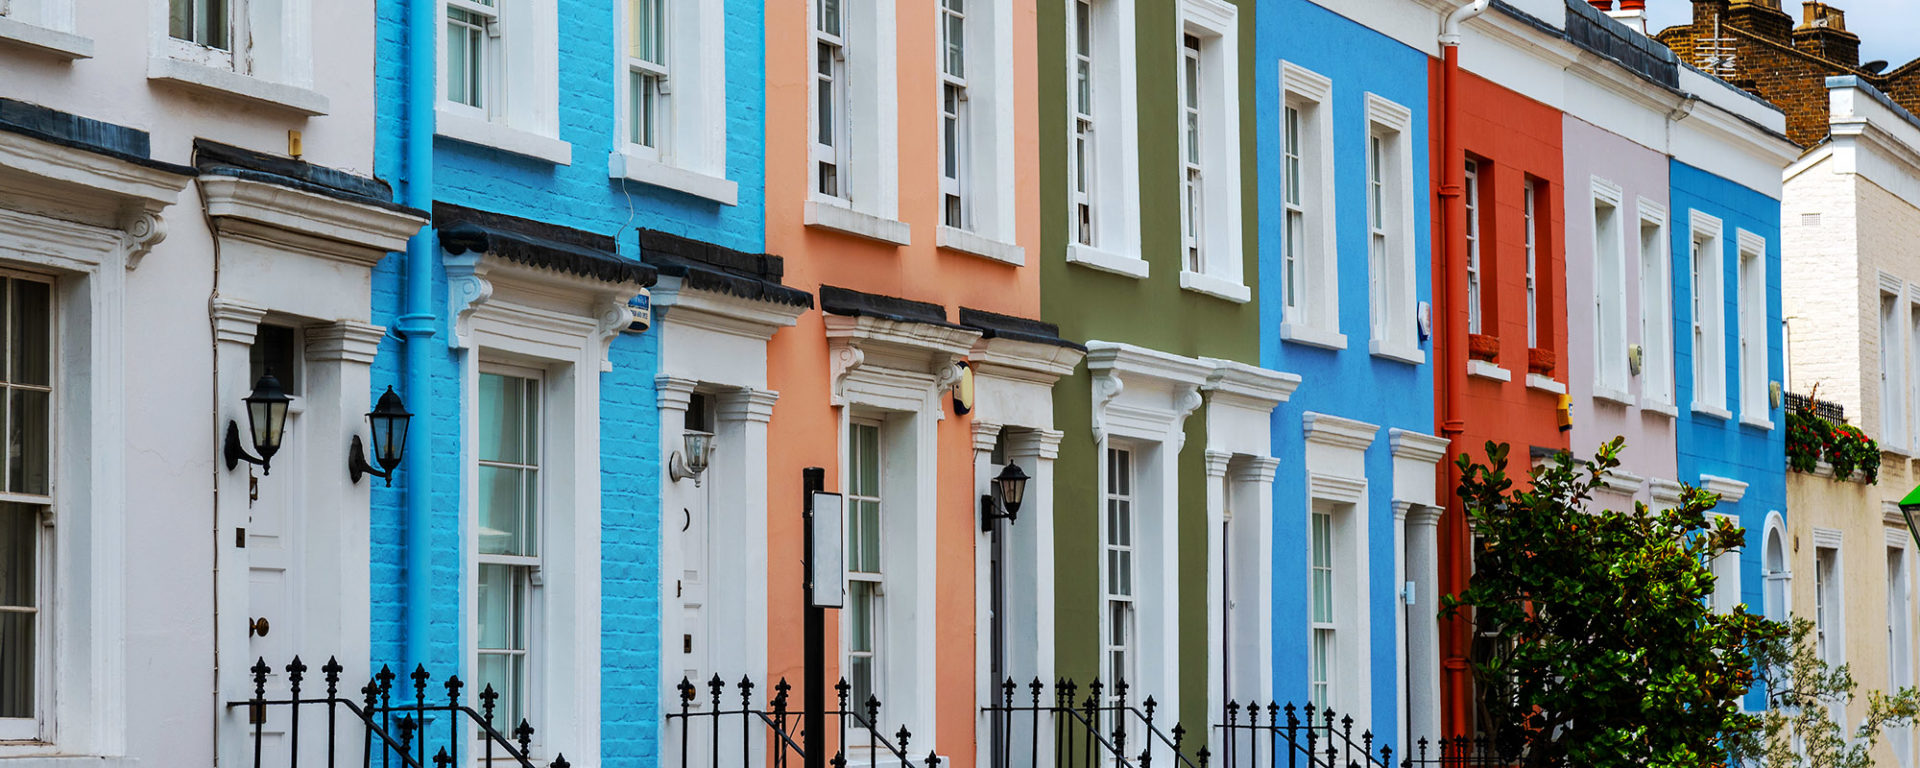 Coloured townhouses